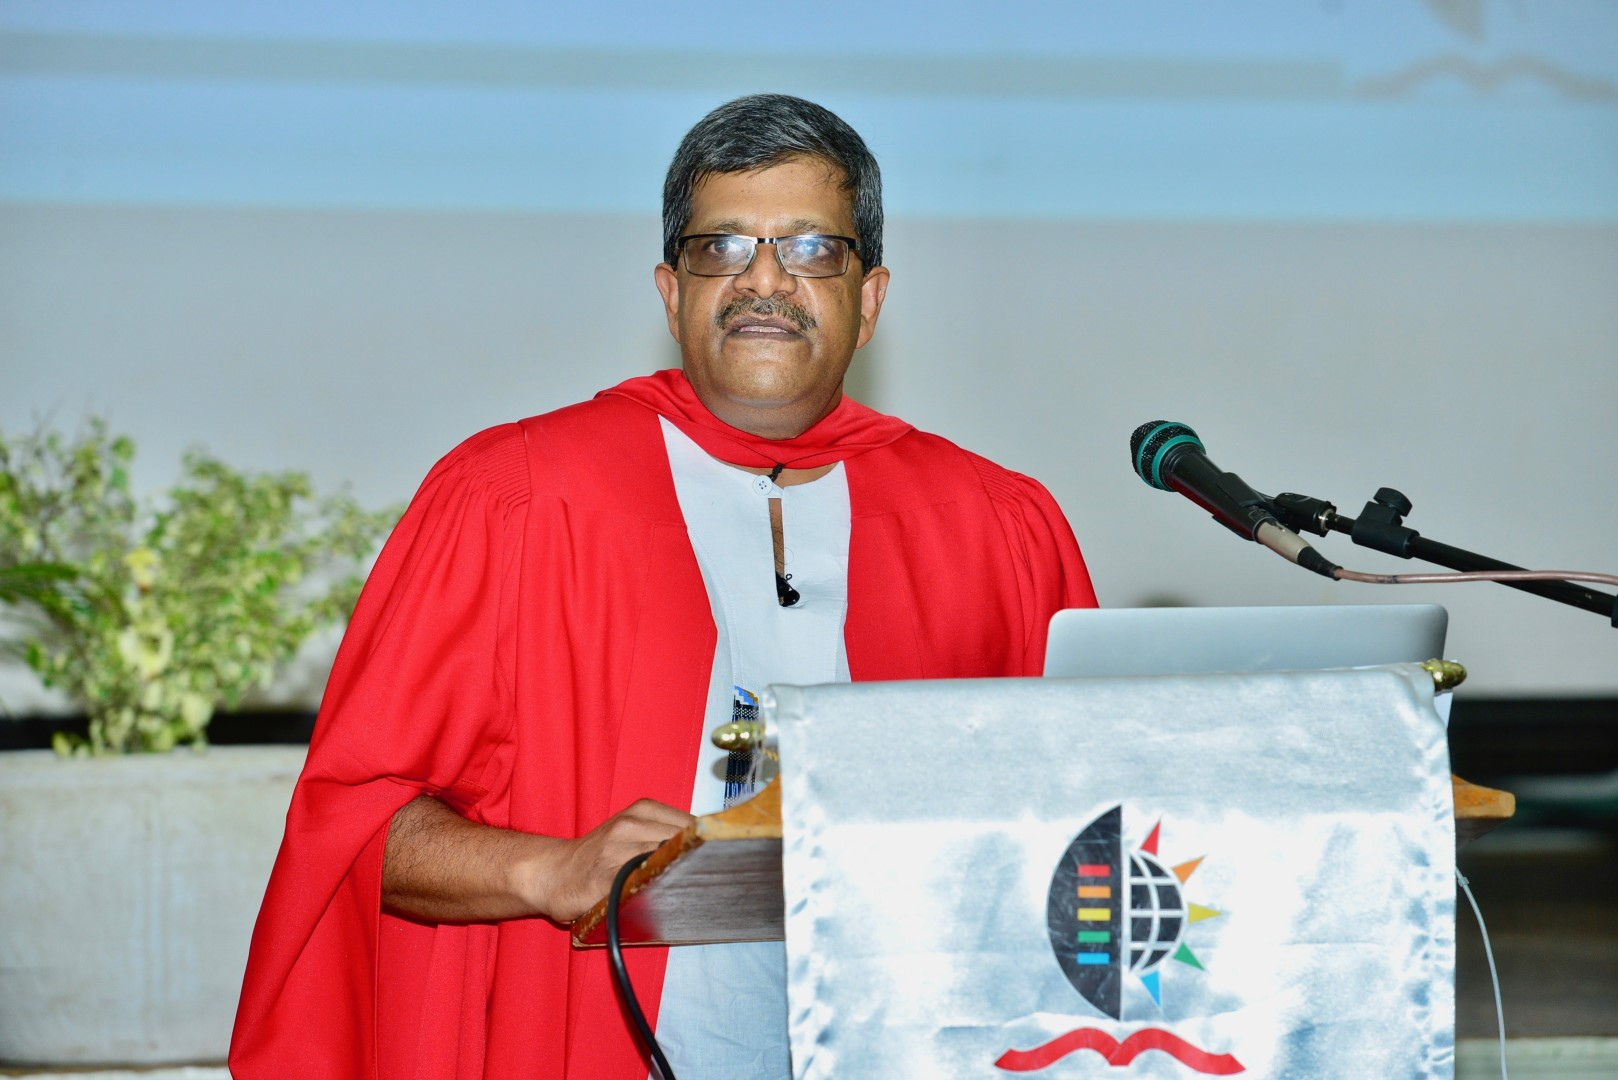 Professor Vaughn John delivers his inaugural lecture on violence in SA